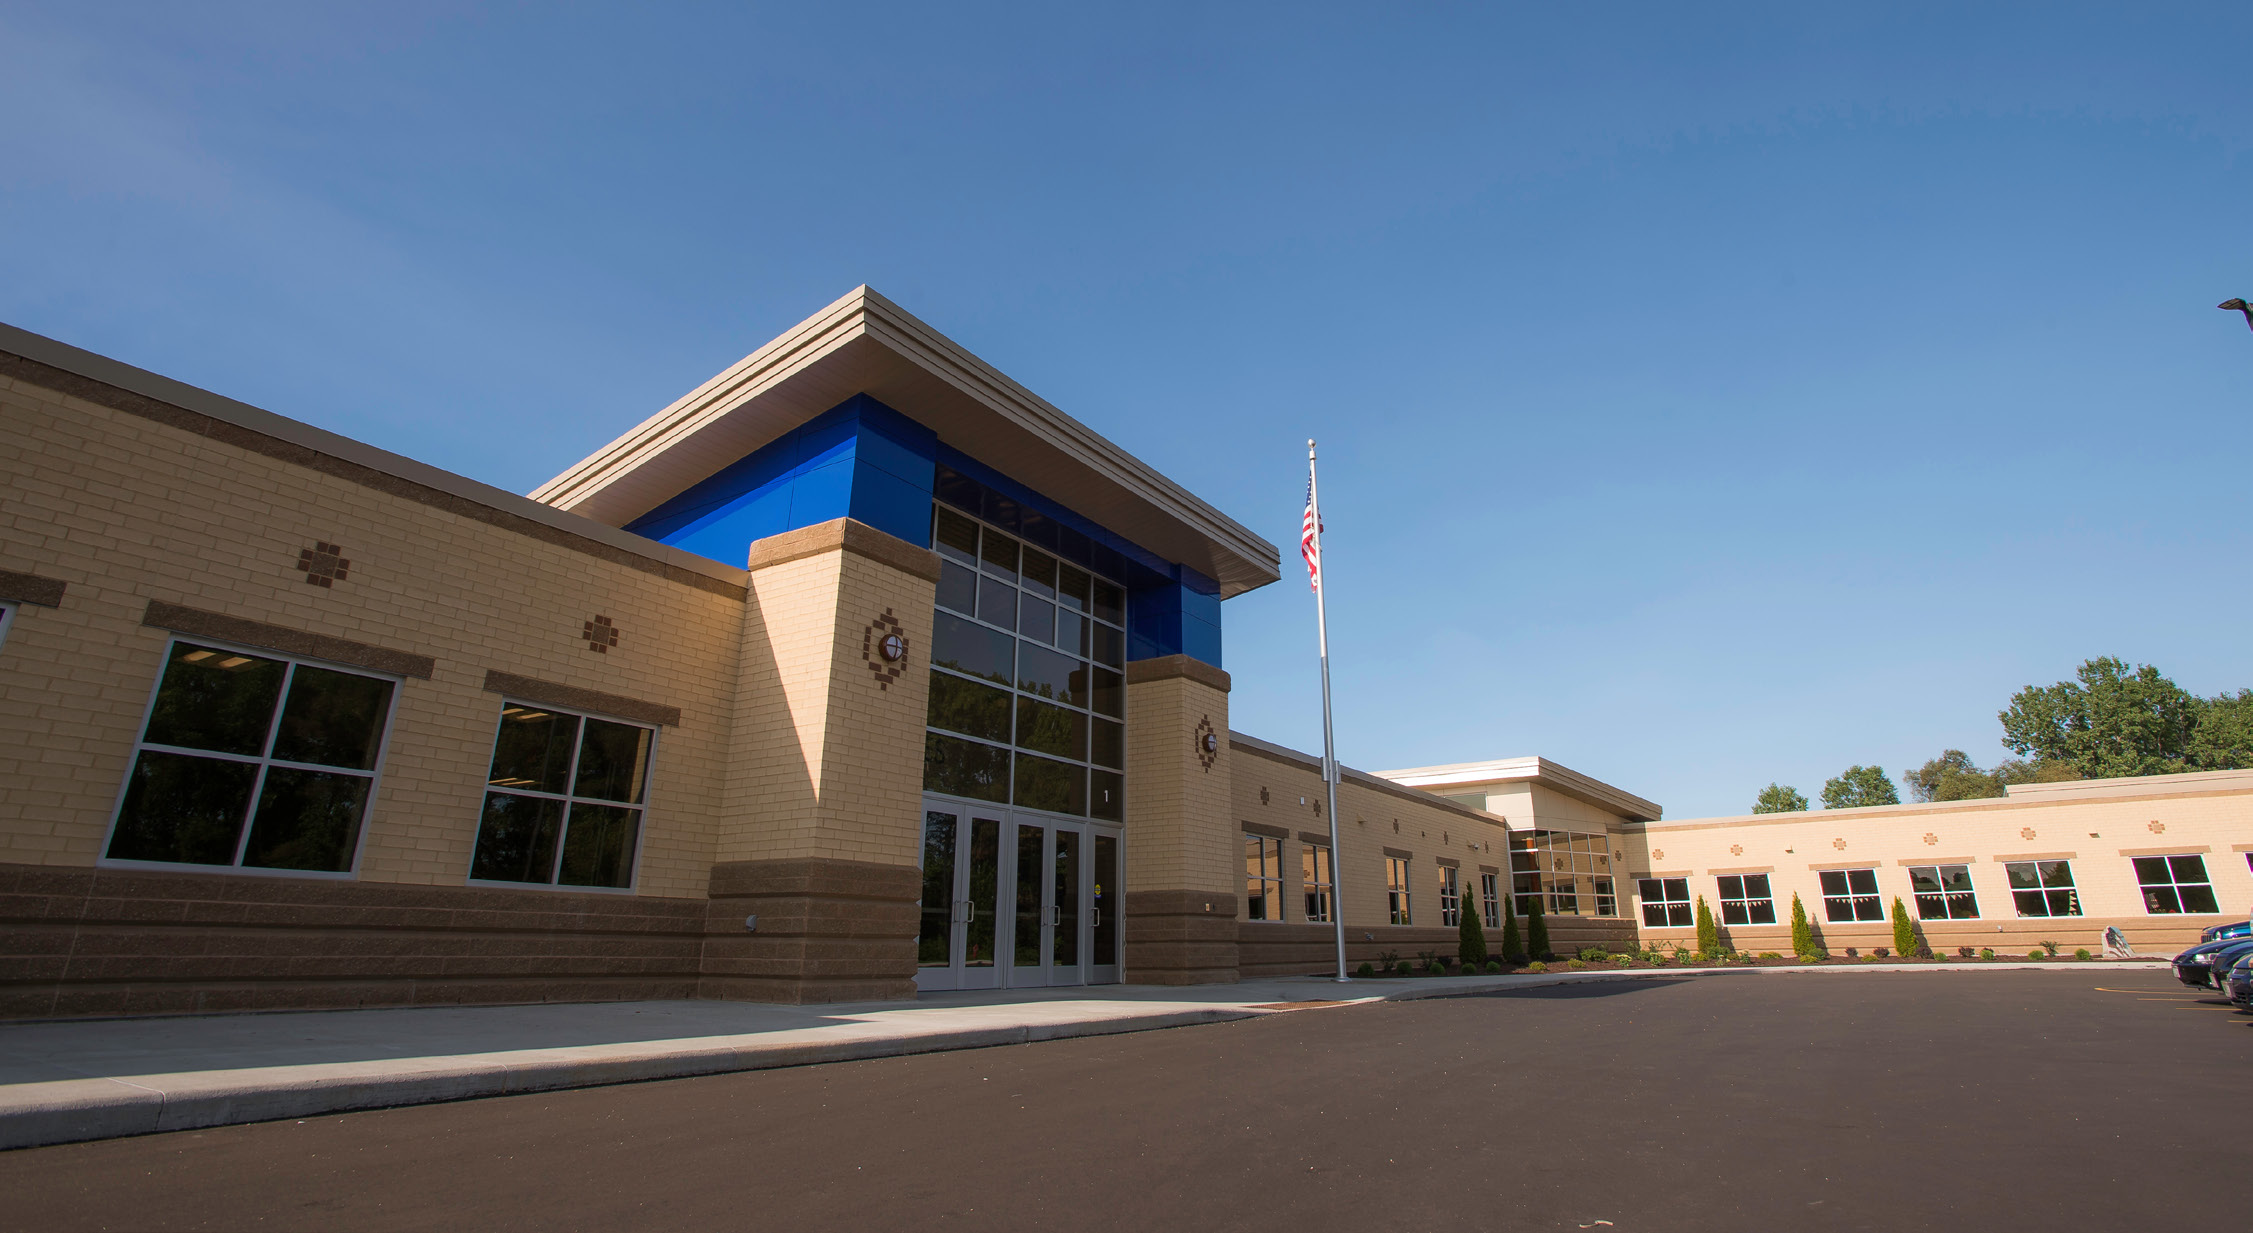 C.D. Smith was hired by the Hilbert School District to provide Preconstruction and Construction Management services for renovations and an elementary addition to its existing high/middle school facility. C.D. Smith self-performed all concrete, steel, masonry, and finish carpentry.